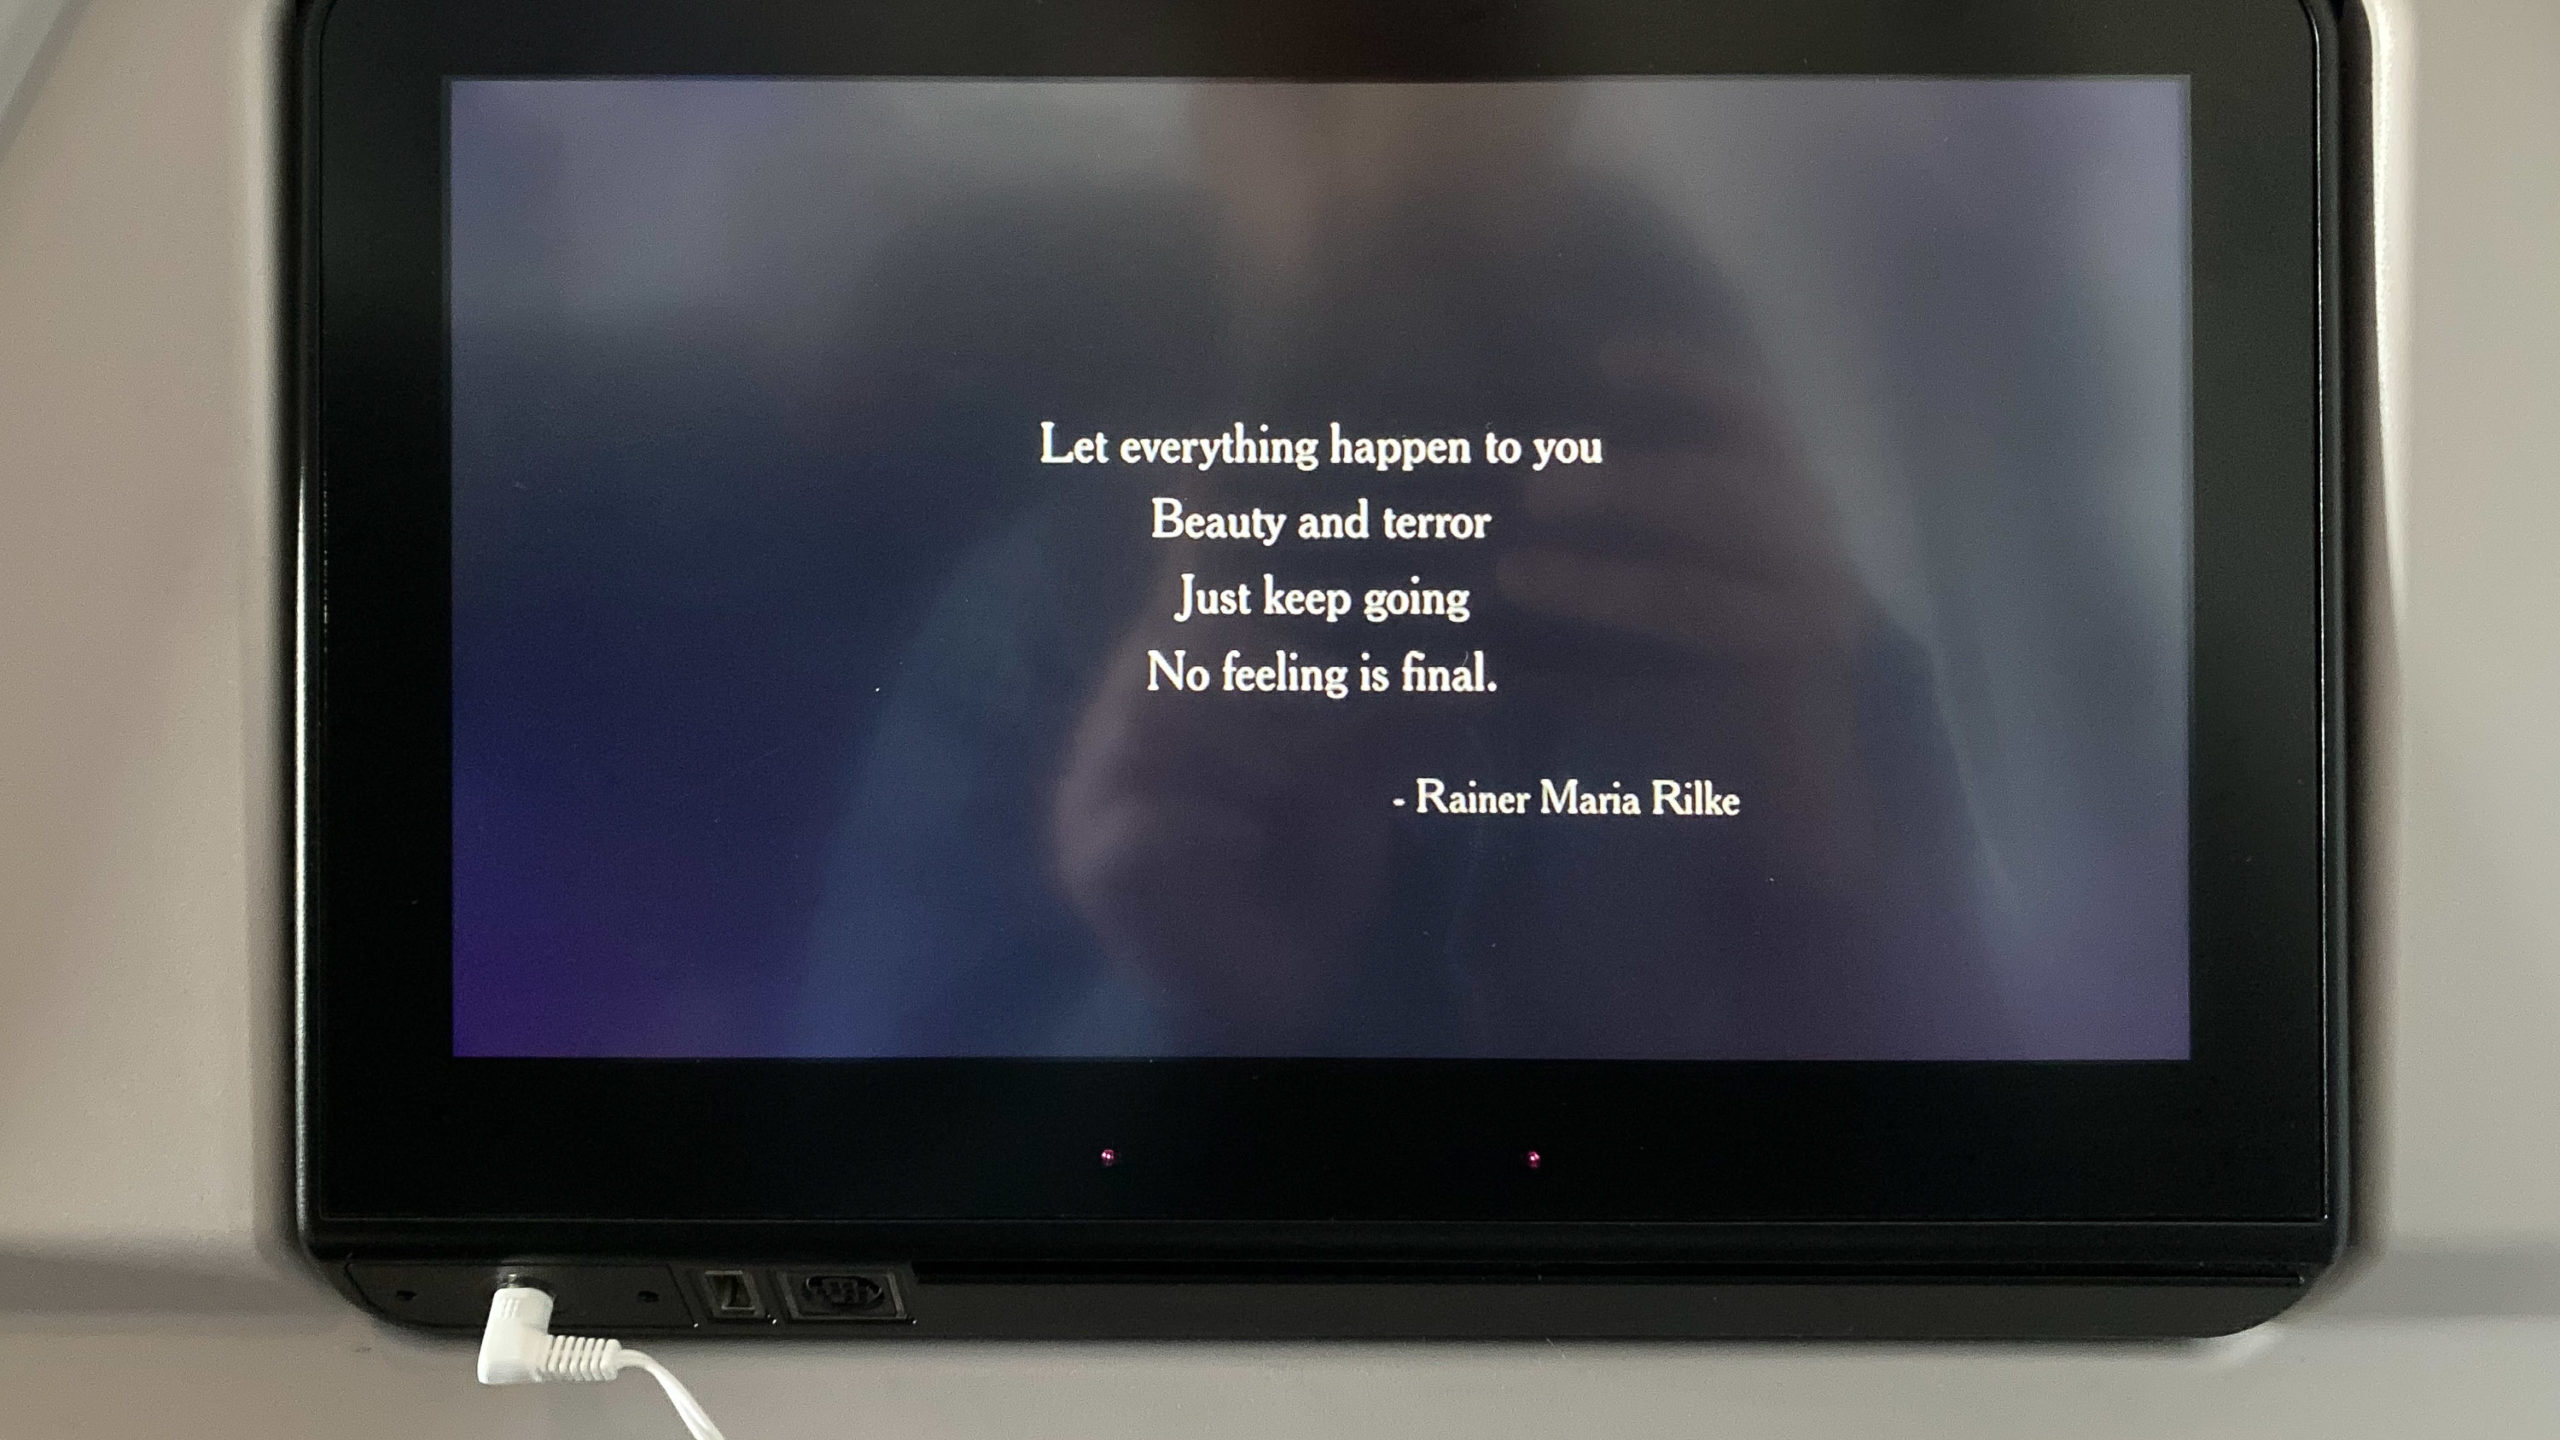 Quote on seatback screen with Rainer Maria Rilke quote